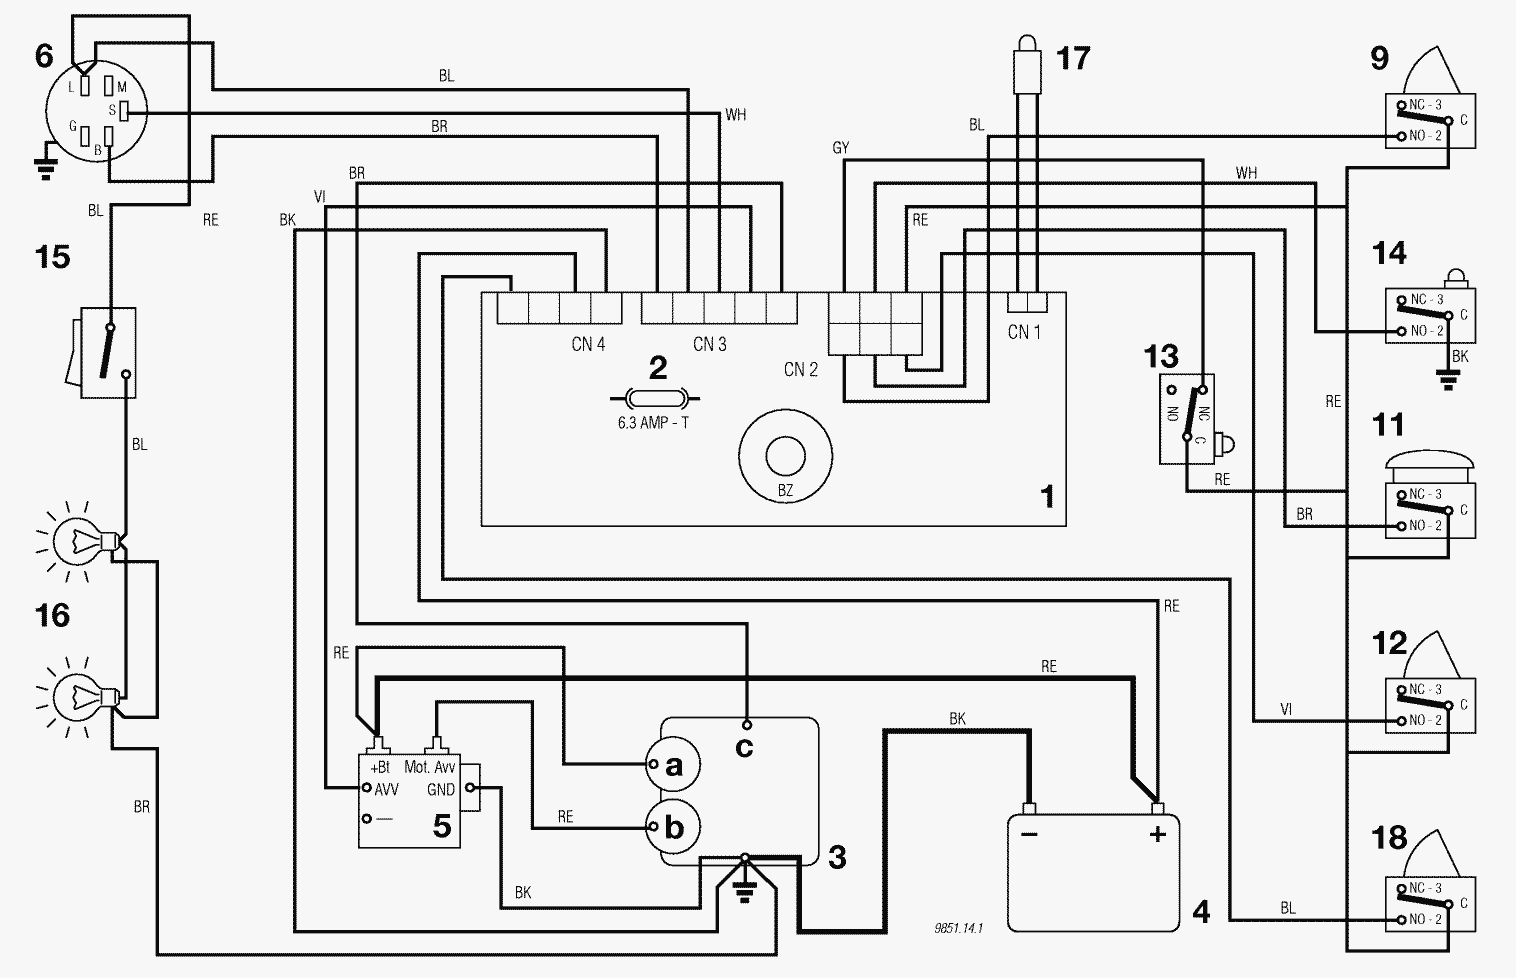 hight resolution of spare parts lists for solo lawn mower wire diagram 10 5 tecumseh ignition wiring location weldmart tecumseh ignition module